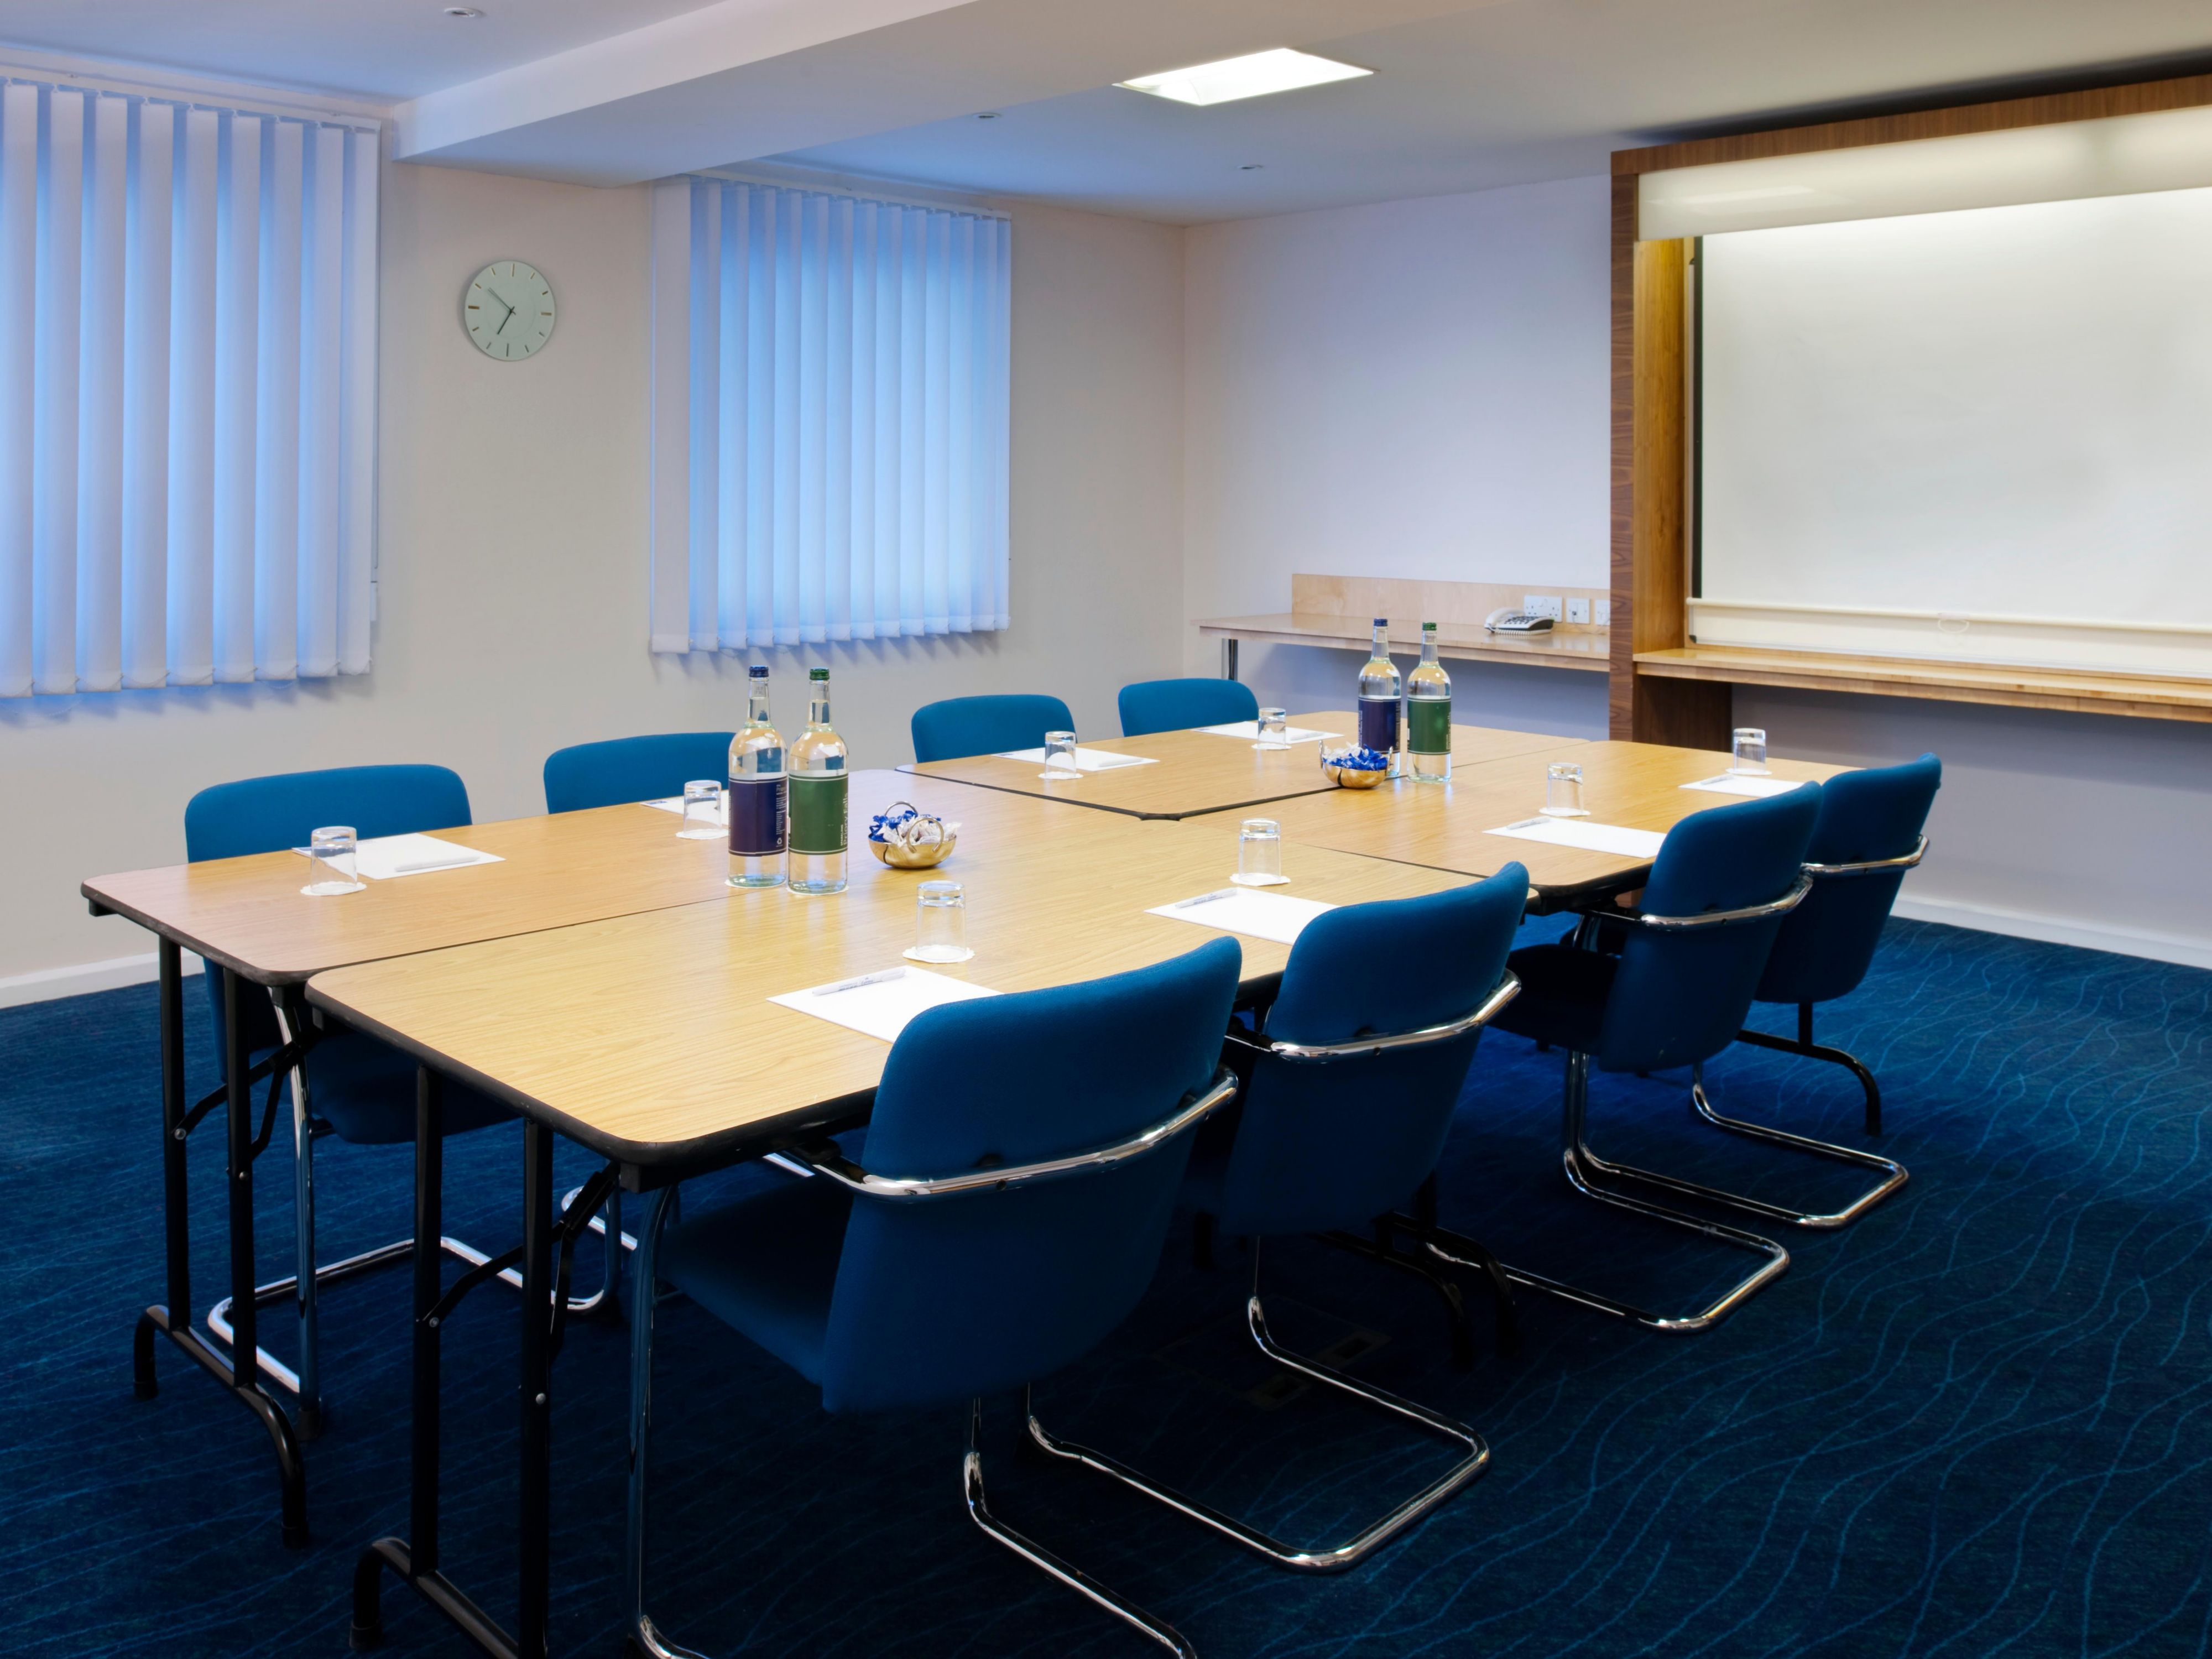 Our Newcastle hotel's conference facilities